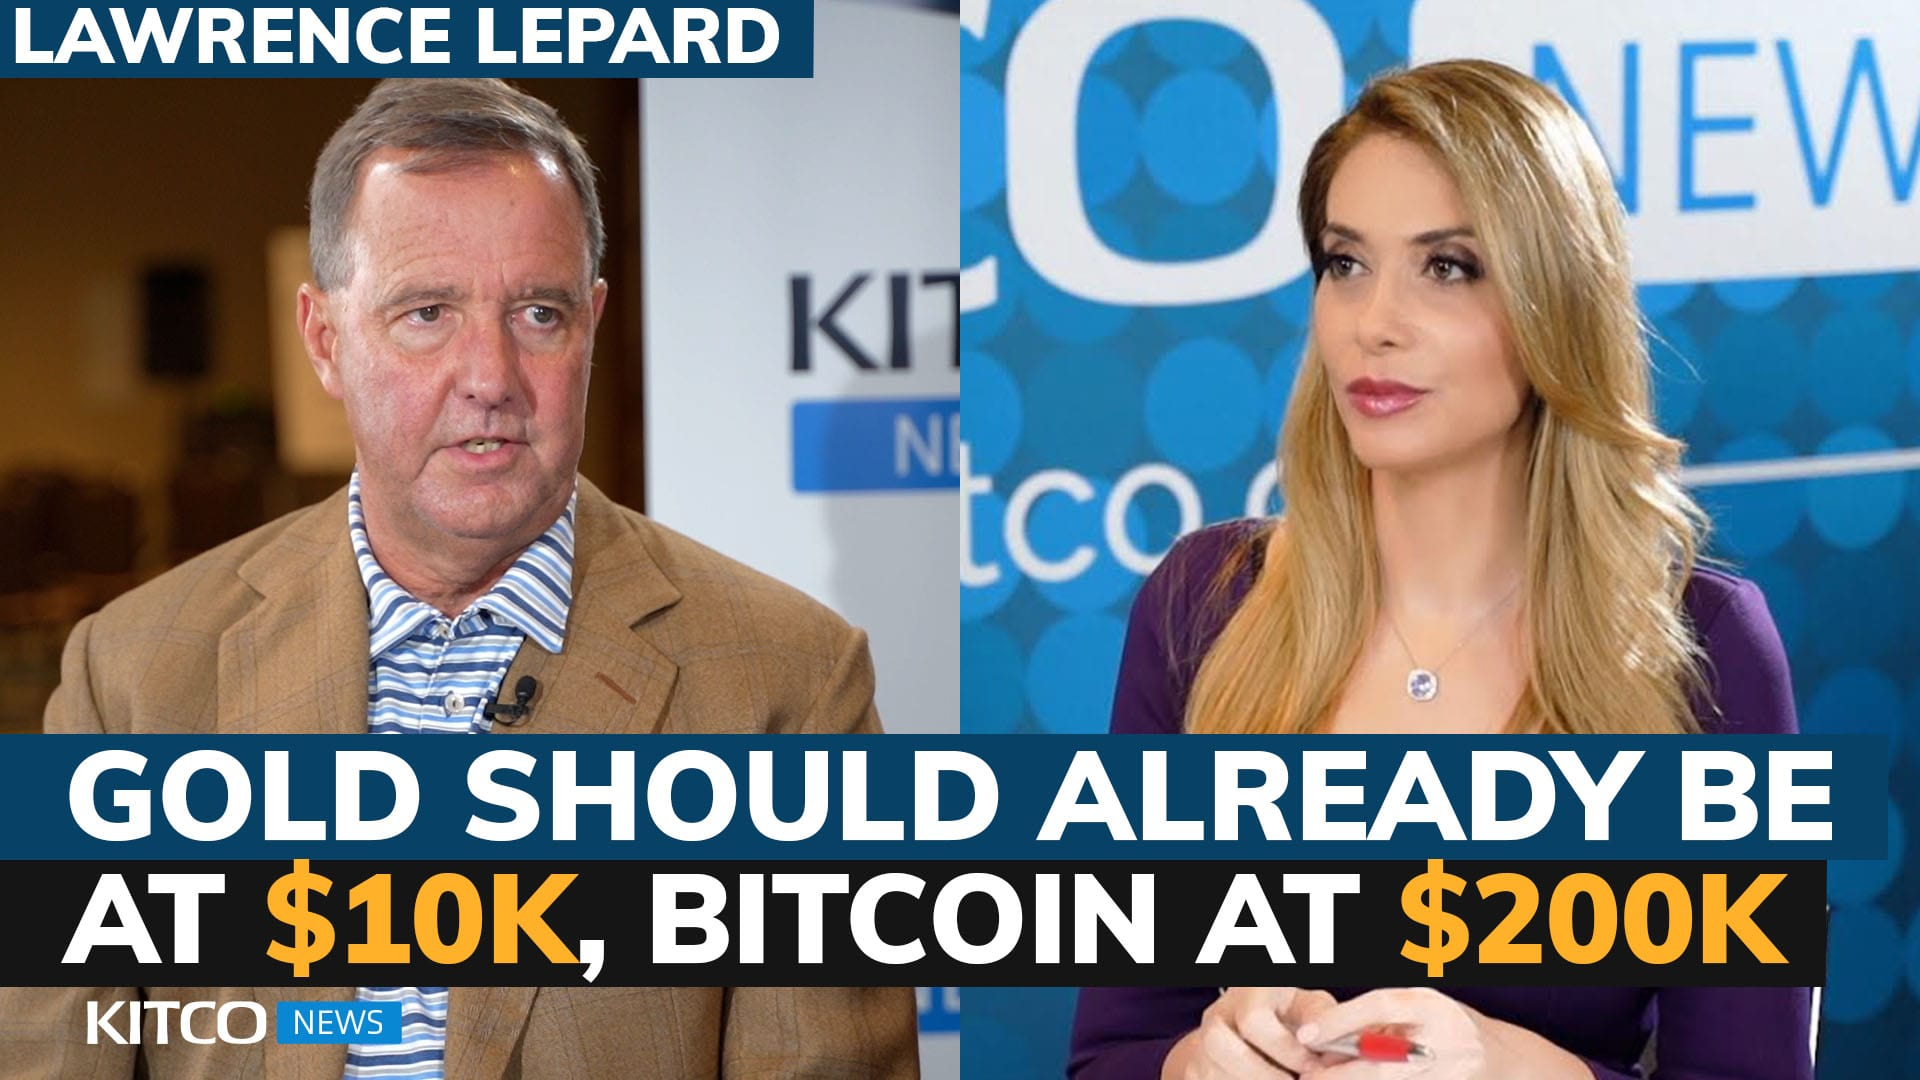 The U.S. Dollar 'As We Know It' Will Be Dead in 10 yrs, Bitcoin Price to Hit $2 million in 5 yrs